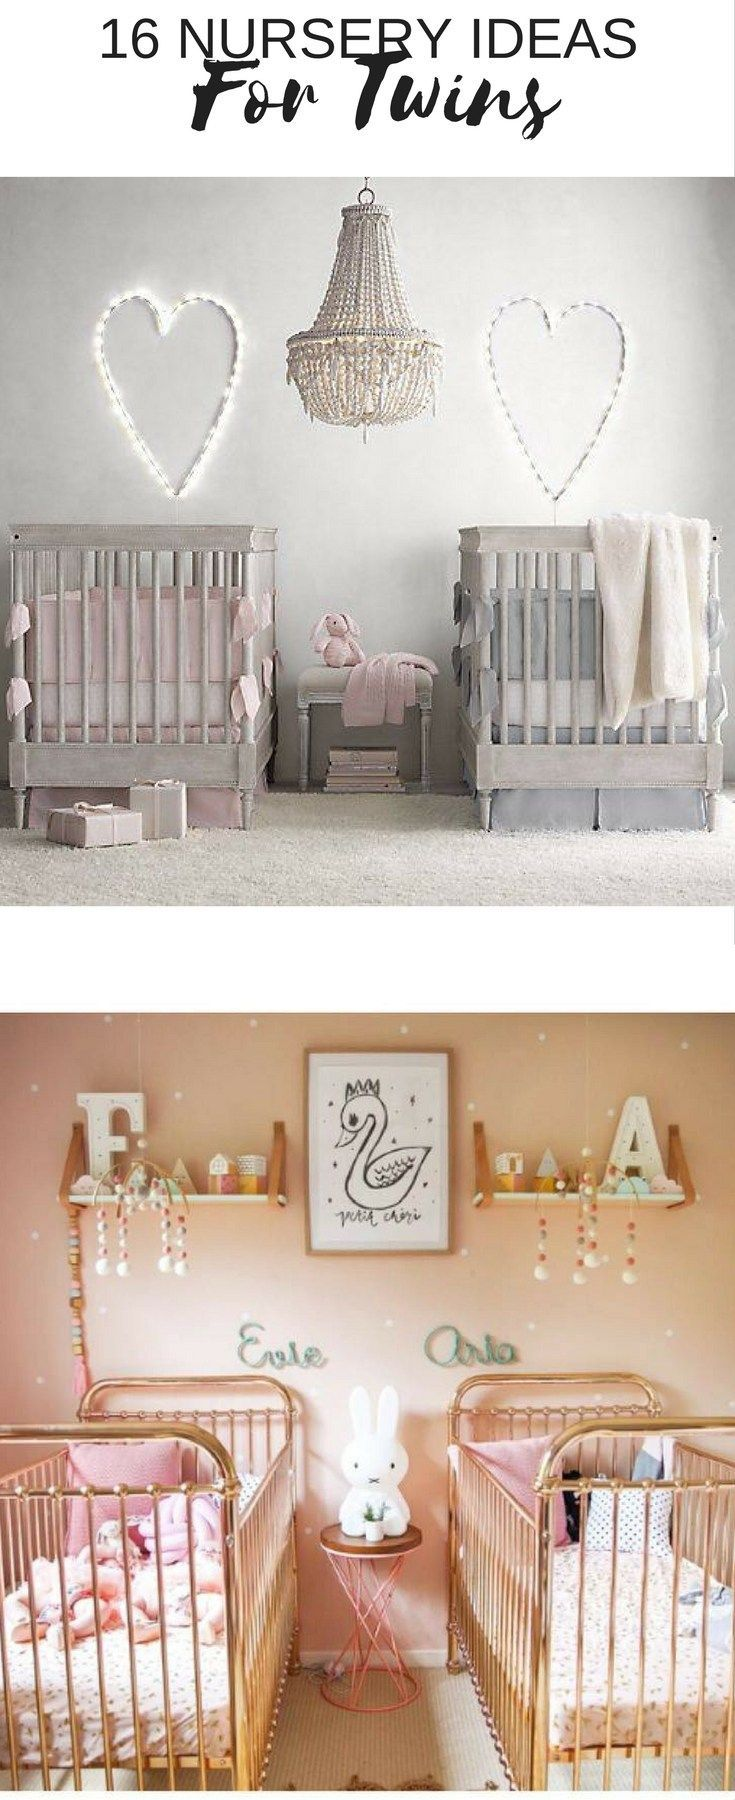 Superieur 17 Gorgeous Twin Nursery Ideas. Baby ...